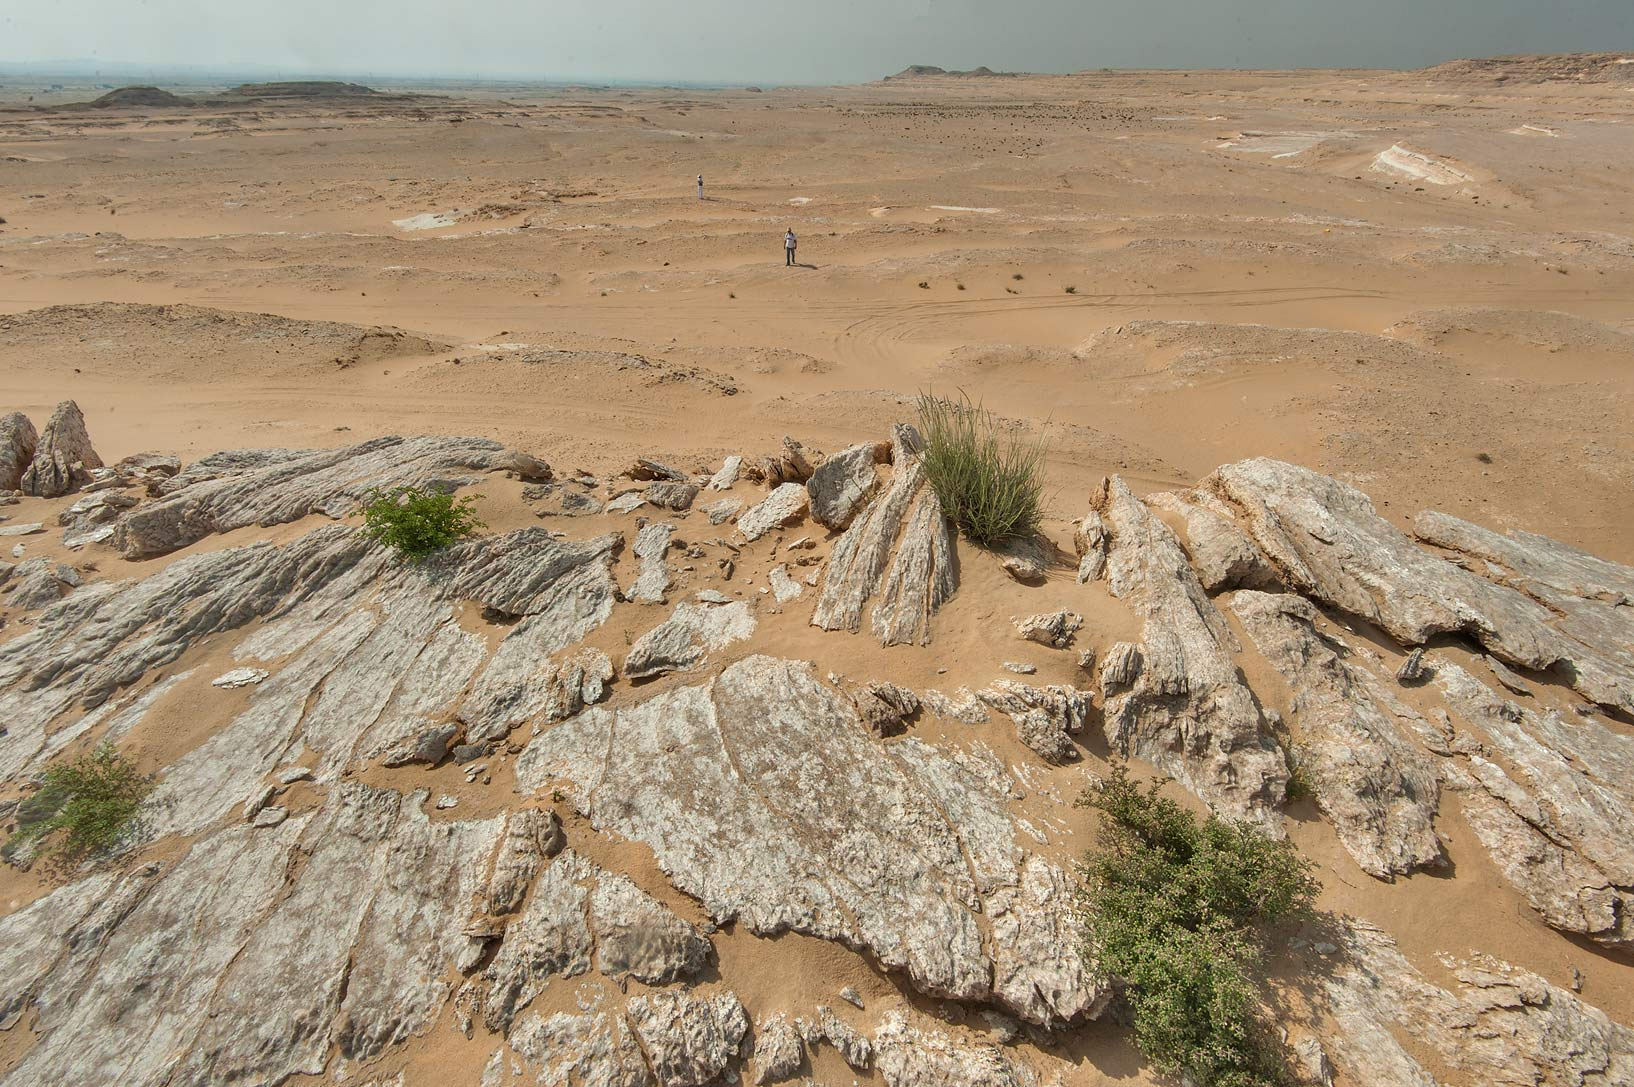 Slabs of gypsum crystals (selenite) in area of...an Nakhsh) in south-western Qatar